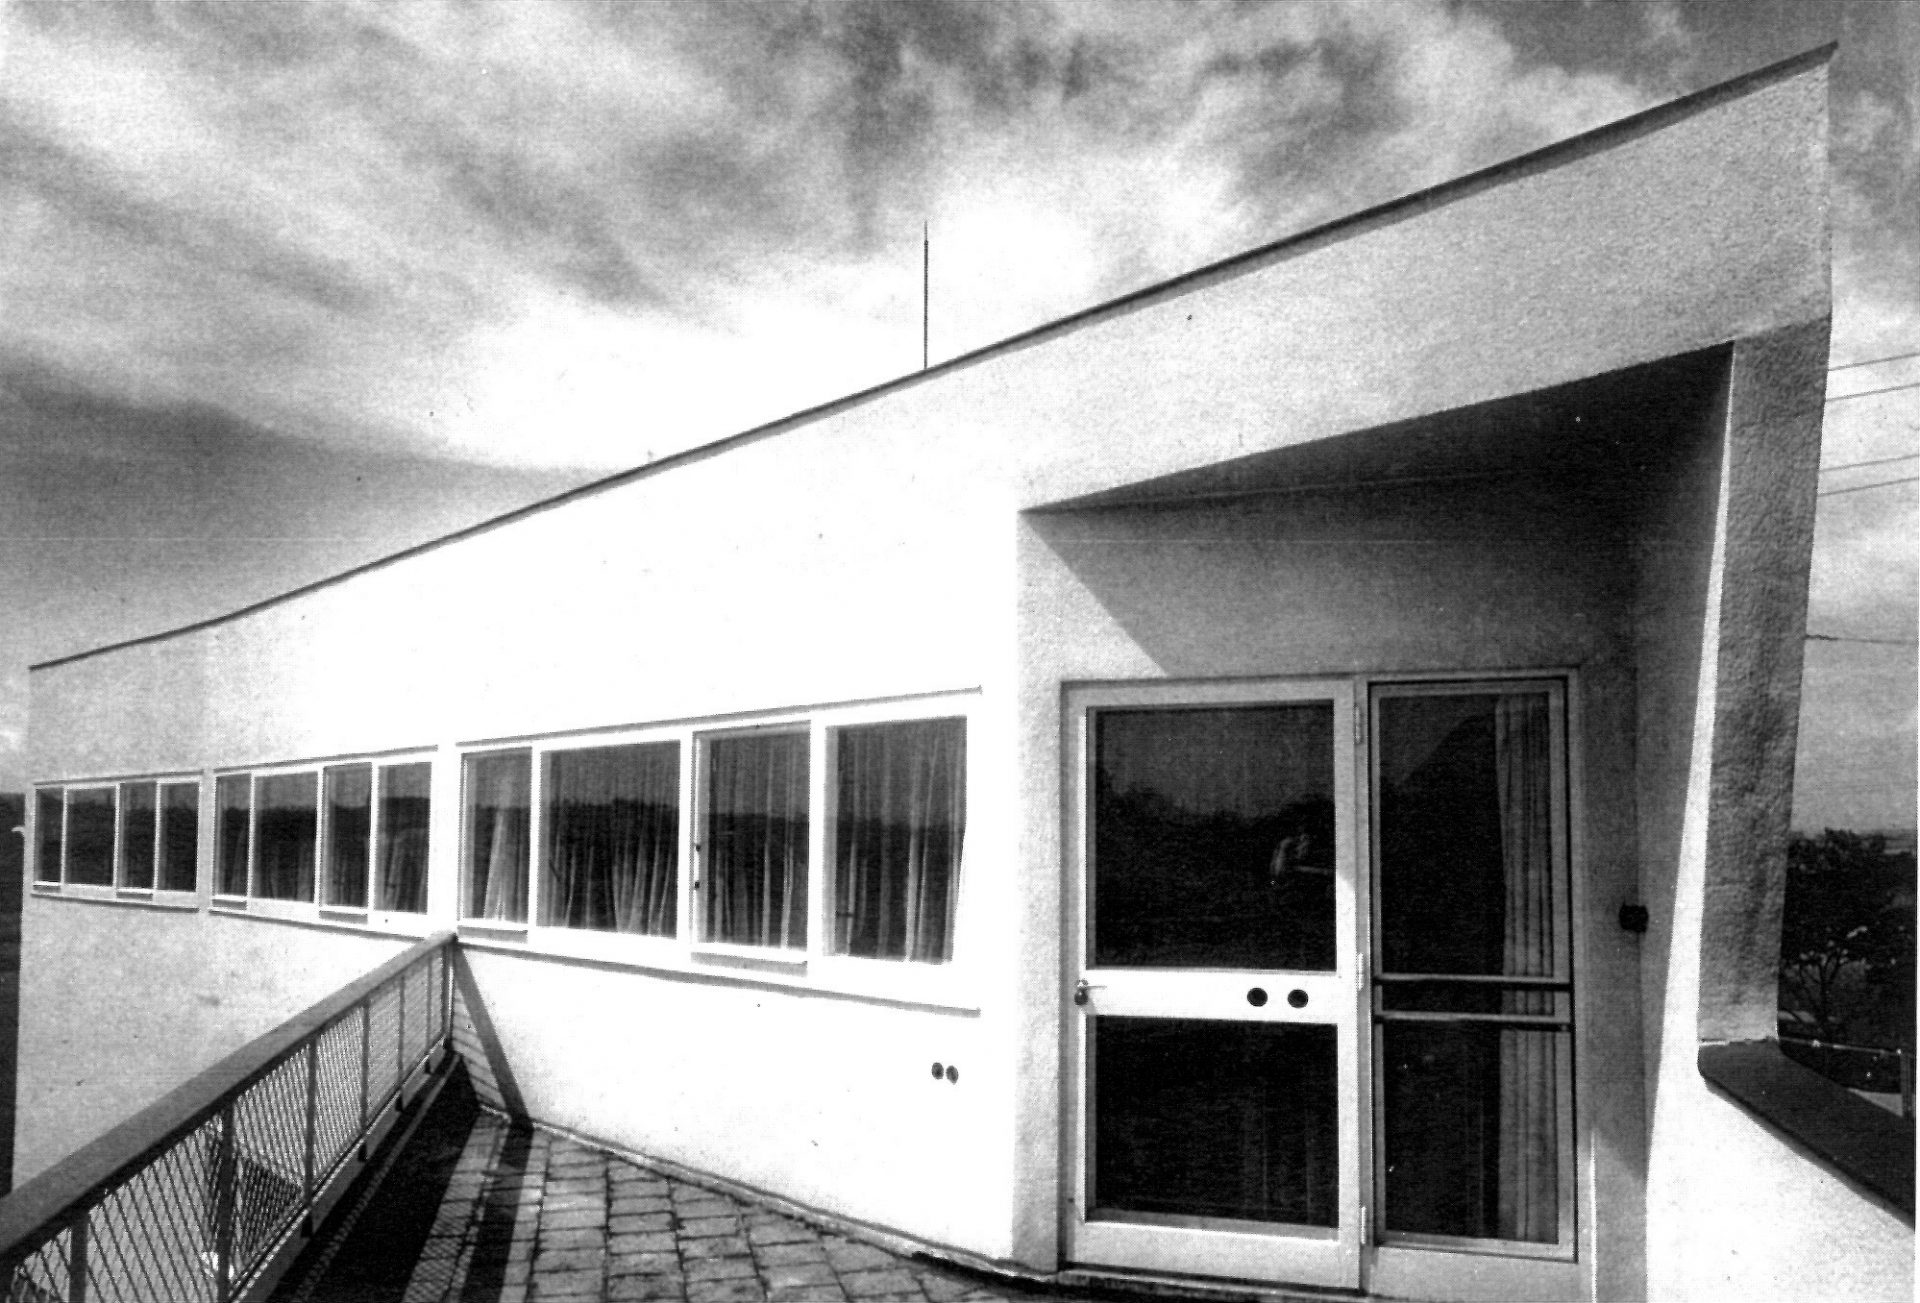 Expecting (from) Architecture: Modernist Projects in Czechoslovakia, 1918-1939